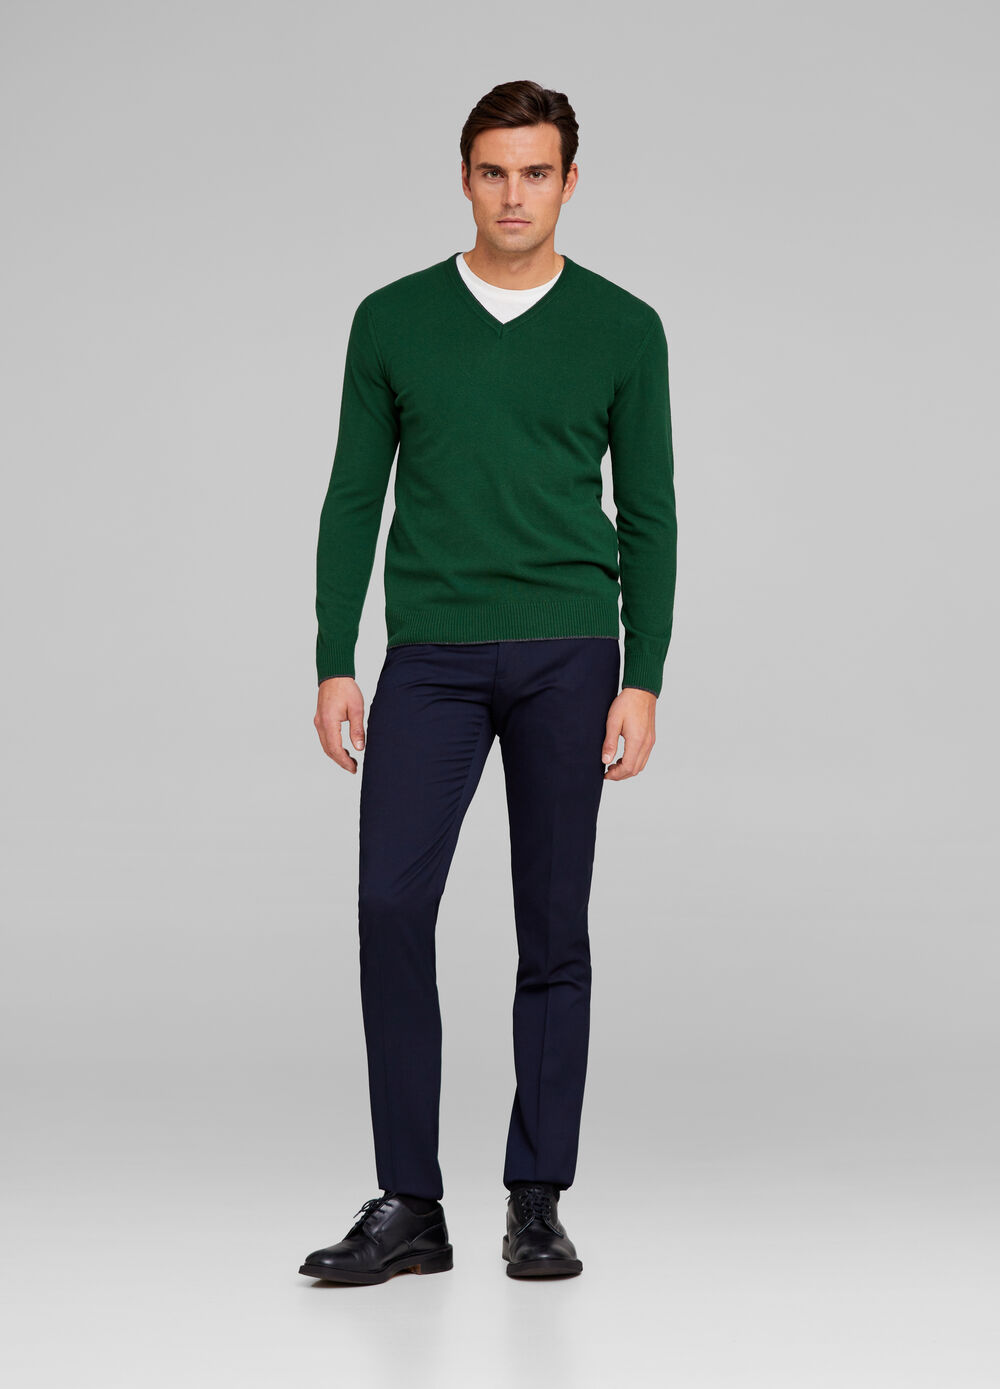 V-neck pullover in tencel and wool blend